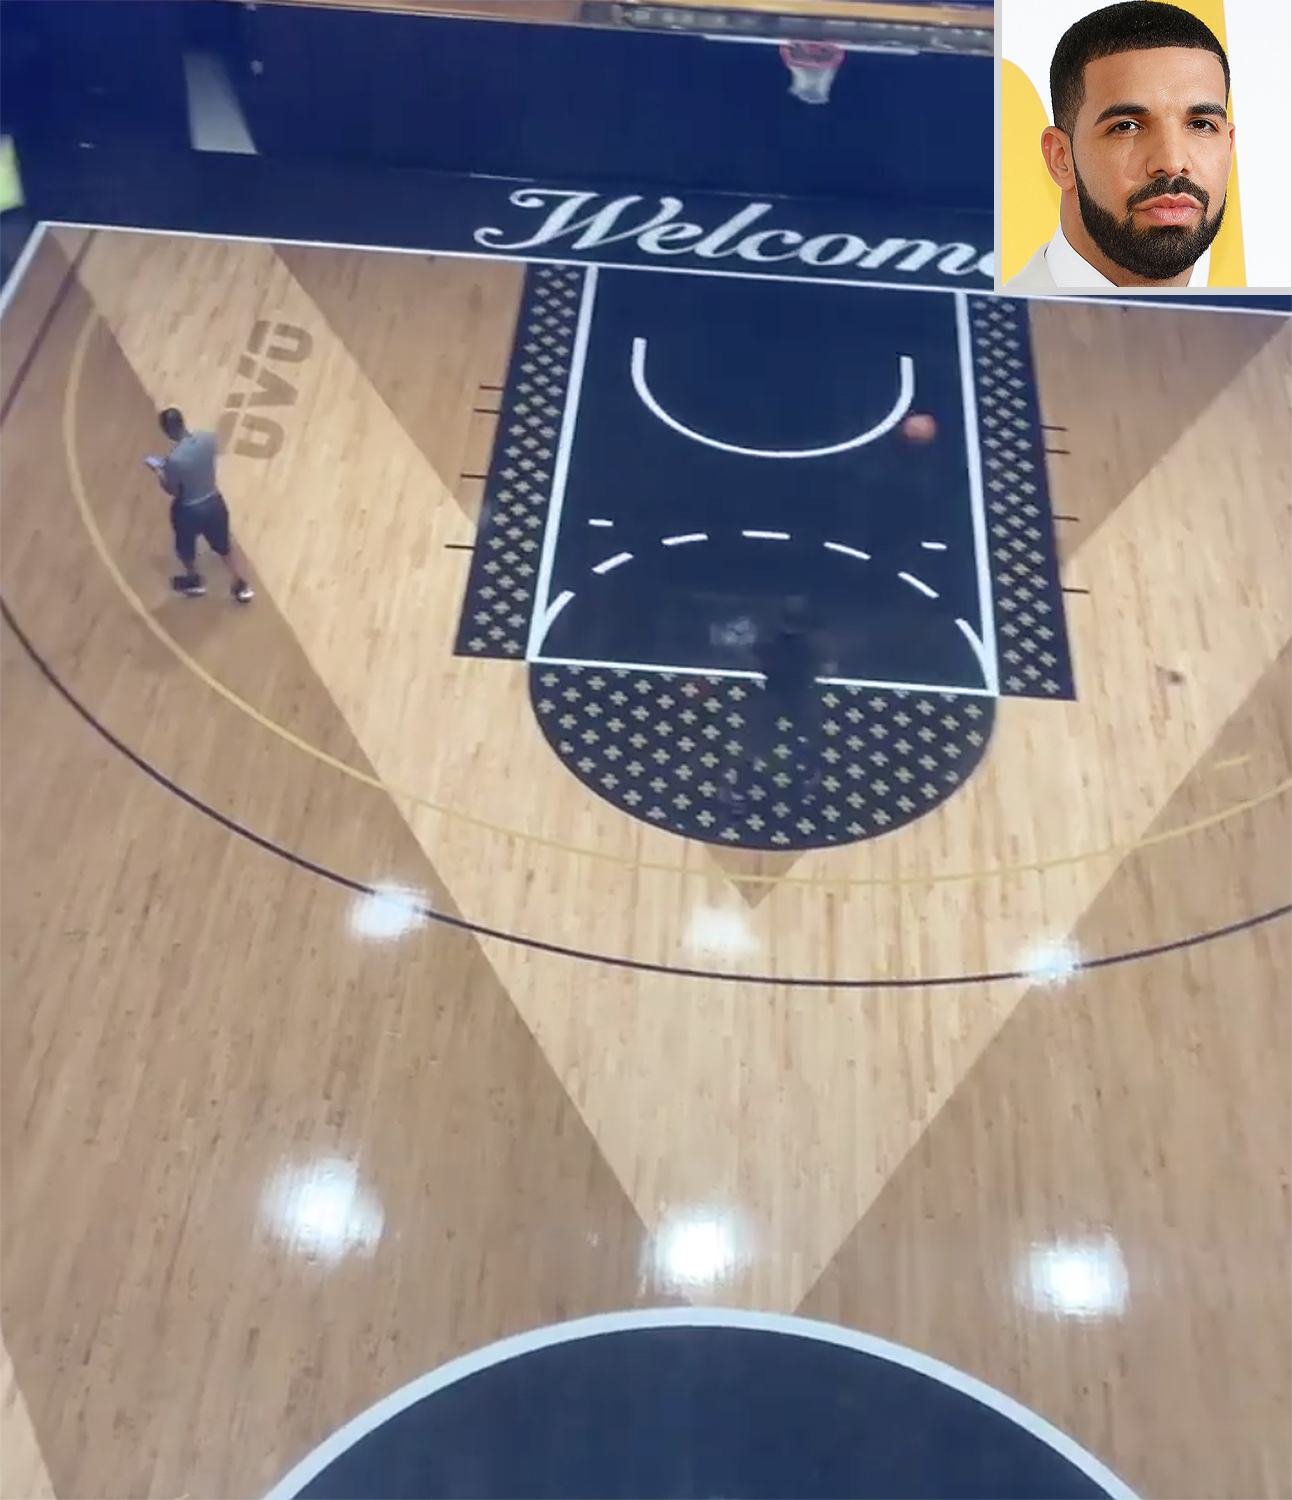 DRAKE'S BASKETBALL COURT